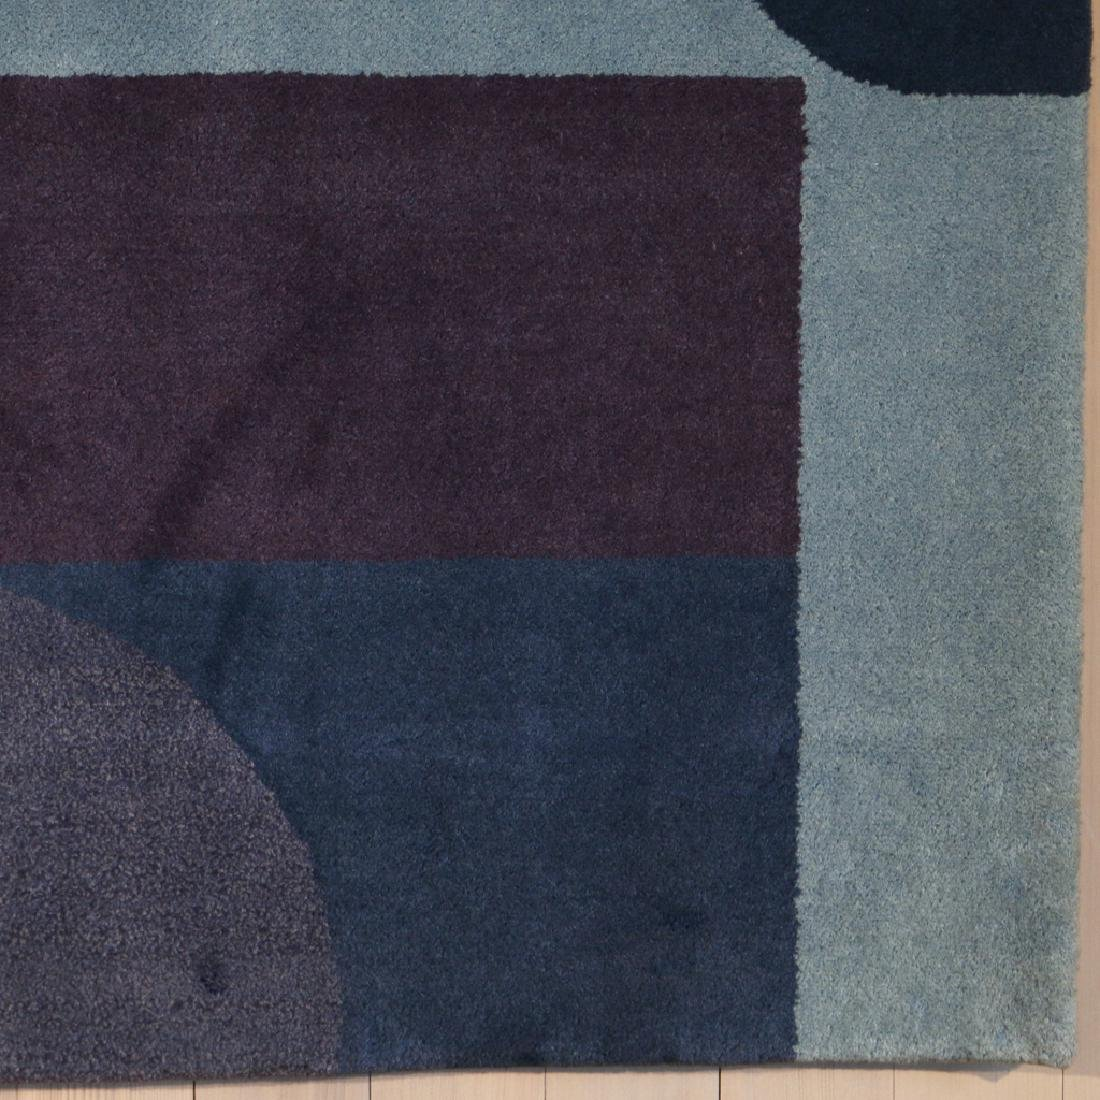 TAPESTRY AFTER PAUL KLEE (1879-1940) - 4